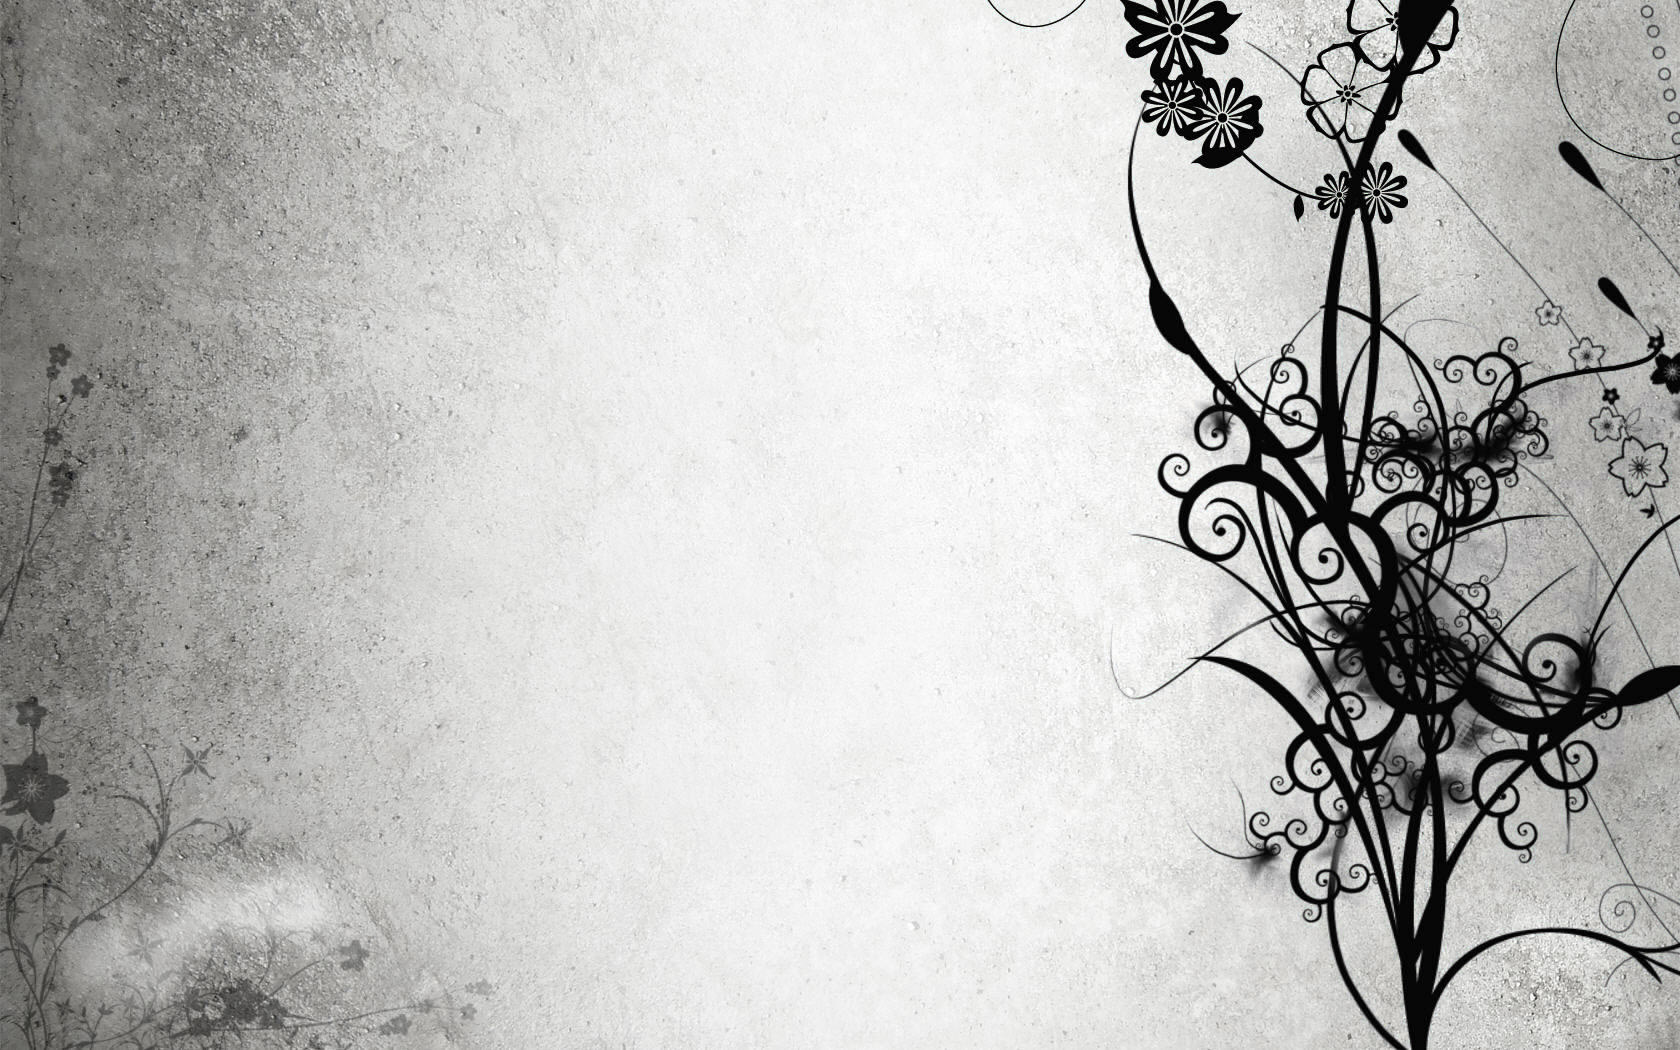 Abstract Black And White Flowers Free Wallpapers 162